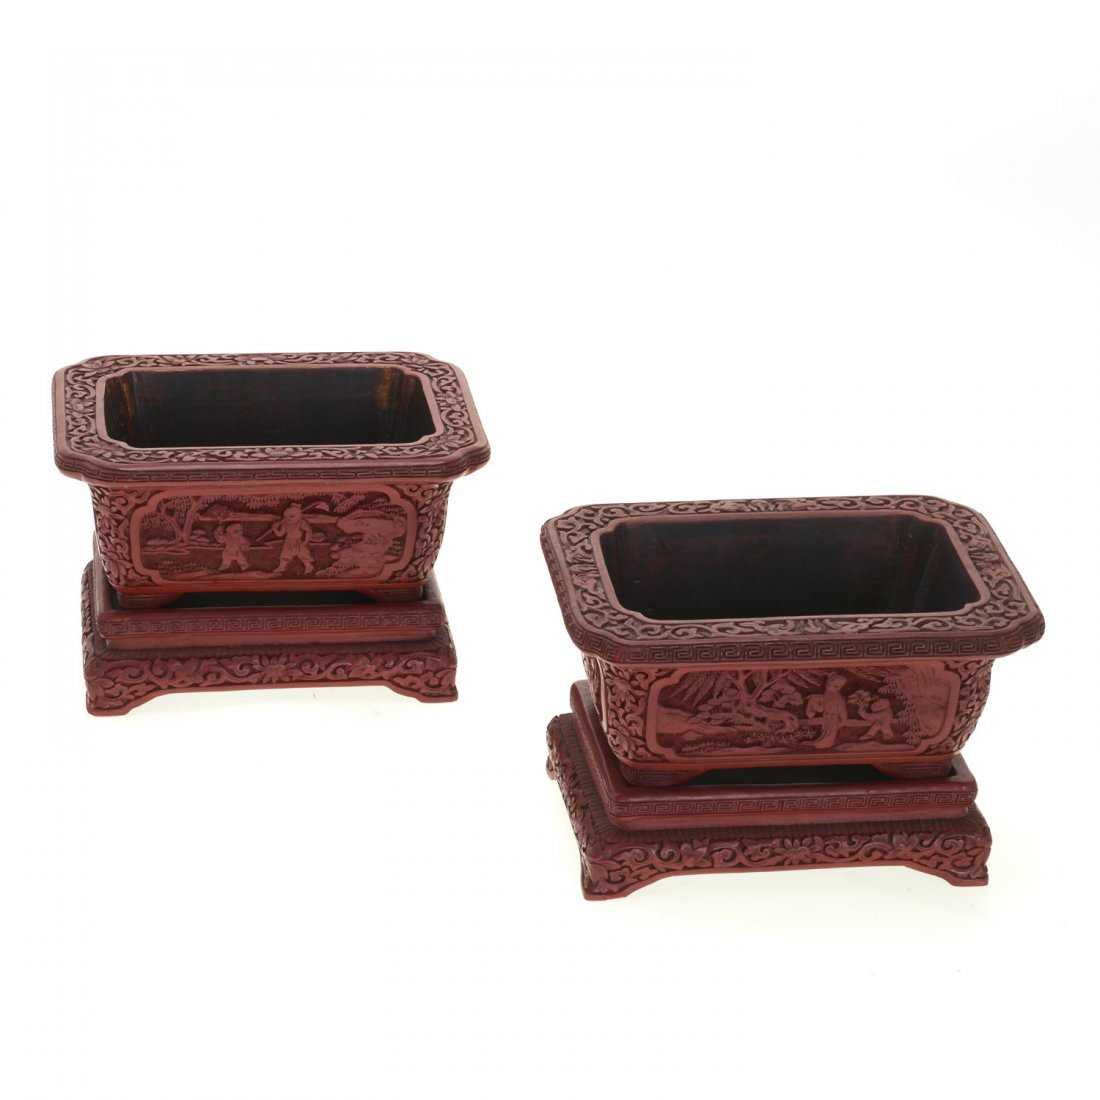 Pair Chinese red cinnabar jardinieres on stands